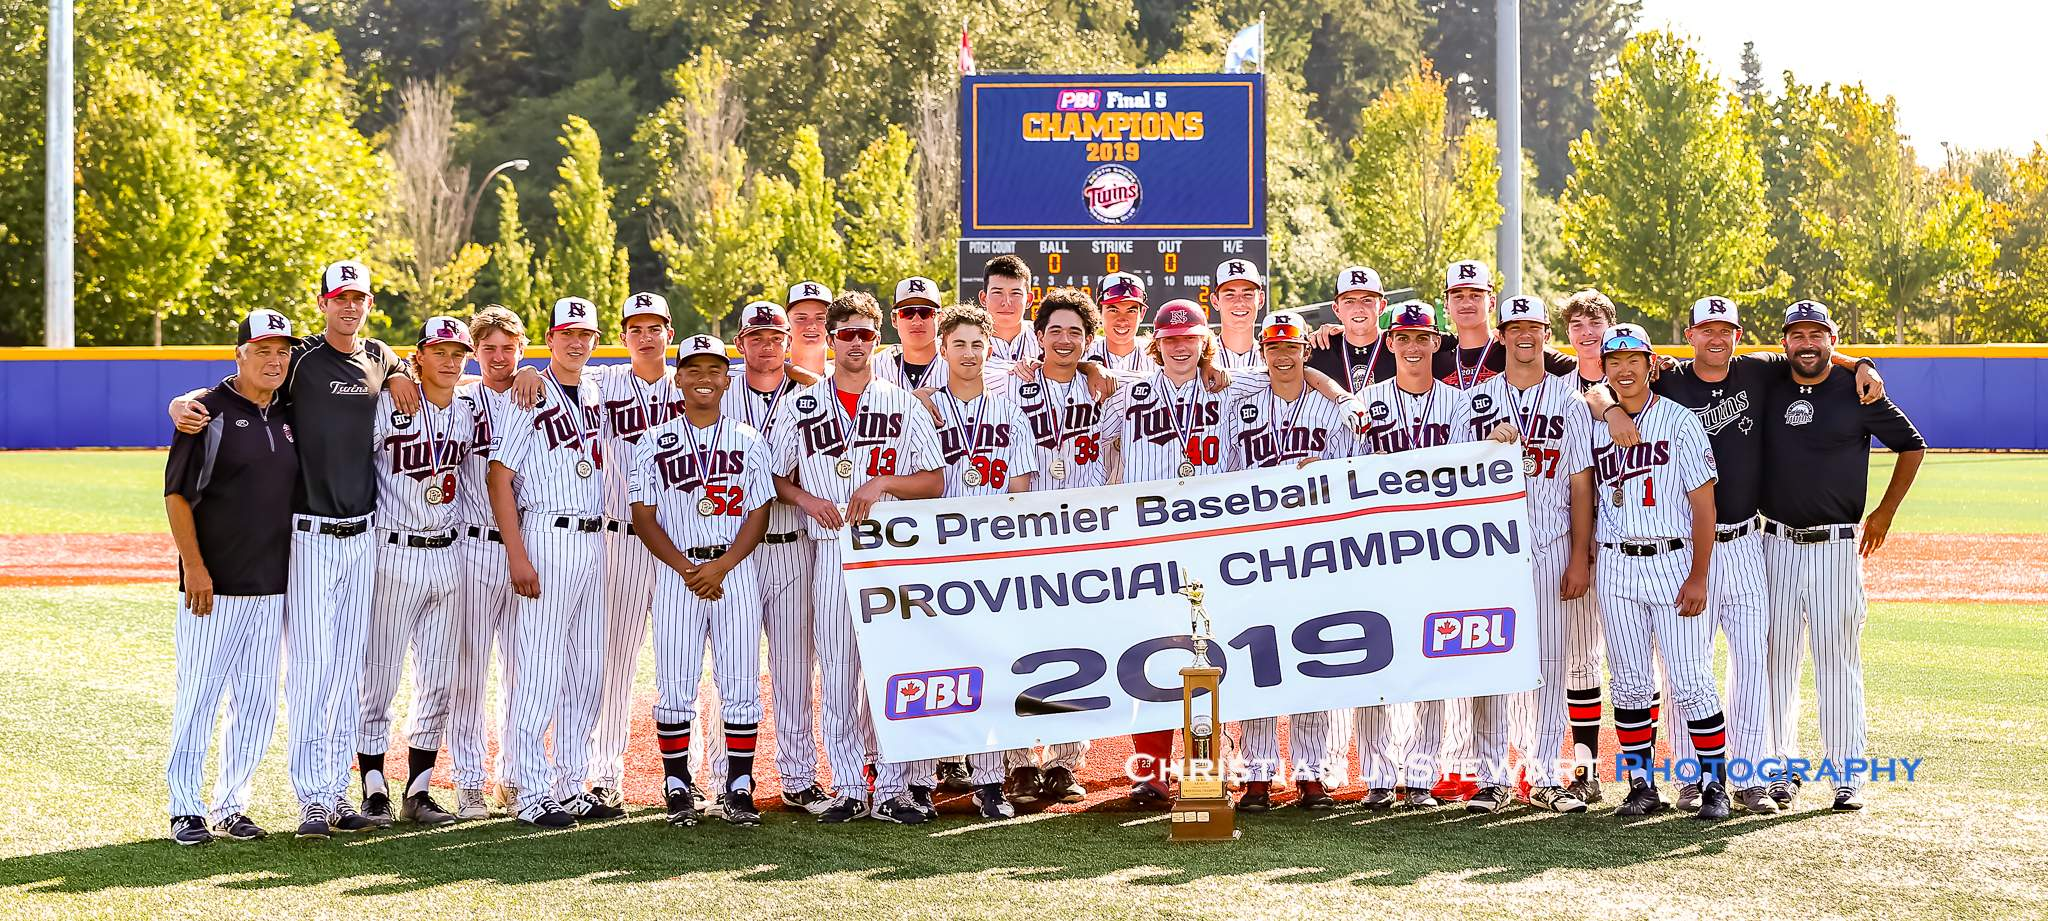 The 2019 BCPBL Champion North Shore Twins (Photo: Christian J. Stewart)